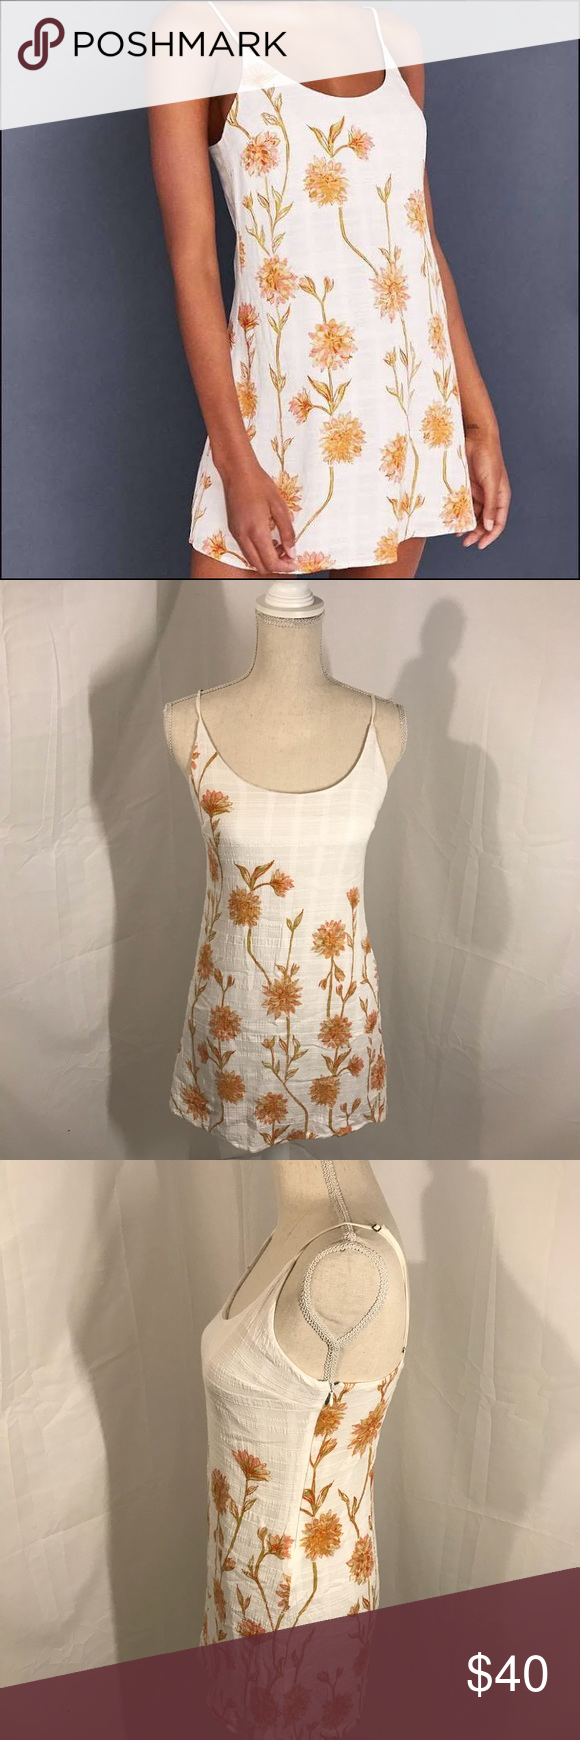 553d2646a5f47 Kimchi Blue Cambridge Floral Dobby Slip Dress IMPORTANT: runs very small,  fits more like an XS/S I typically wear a size xs or small and this dress  fits me ...